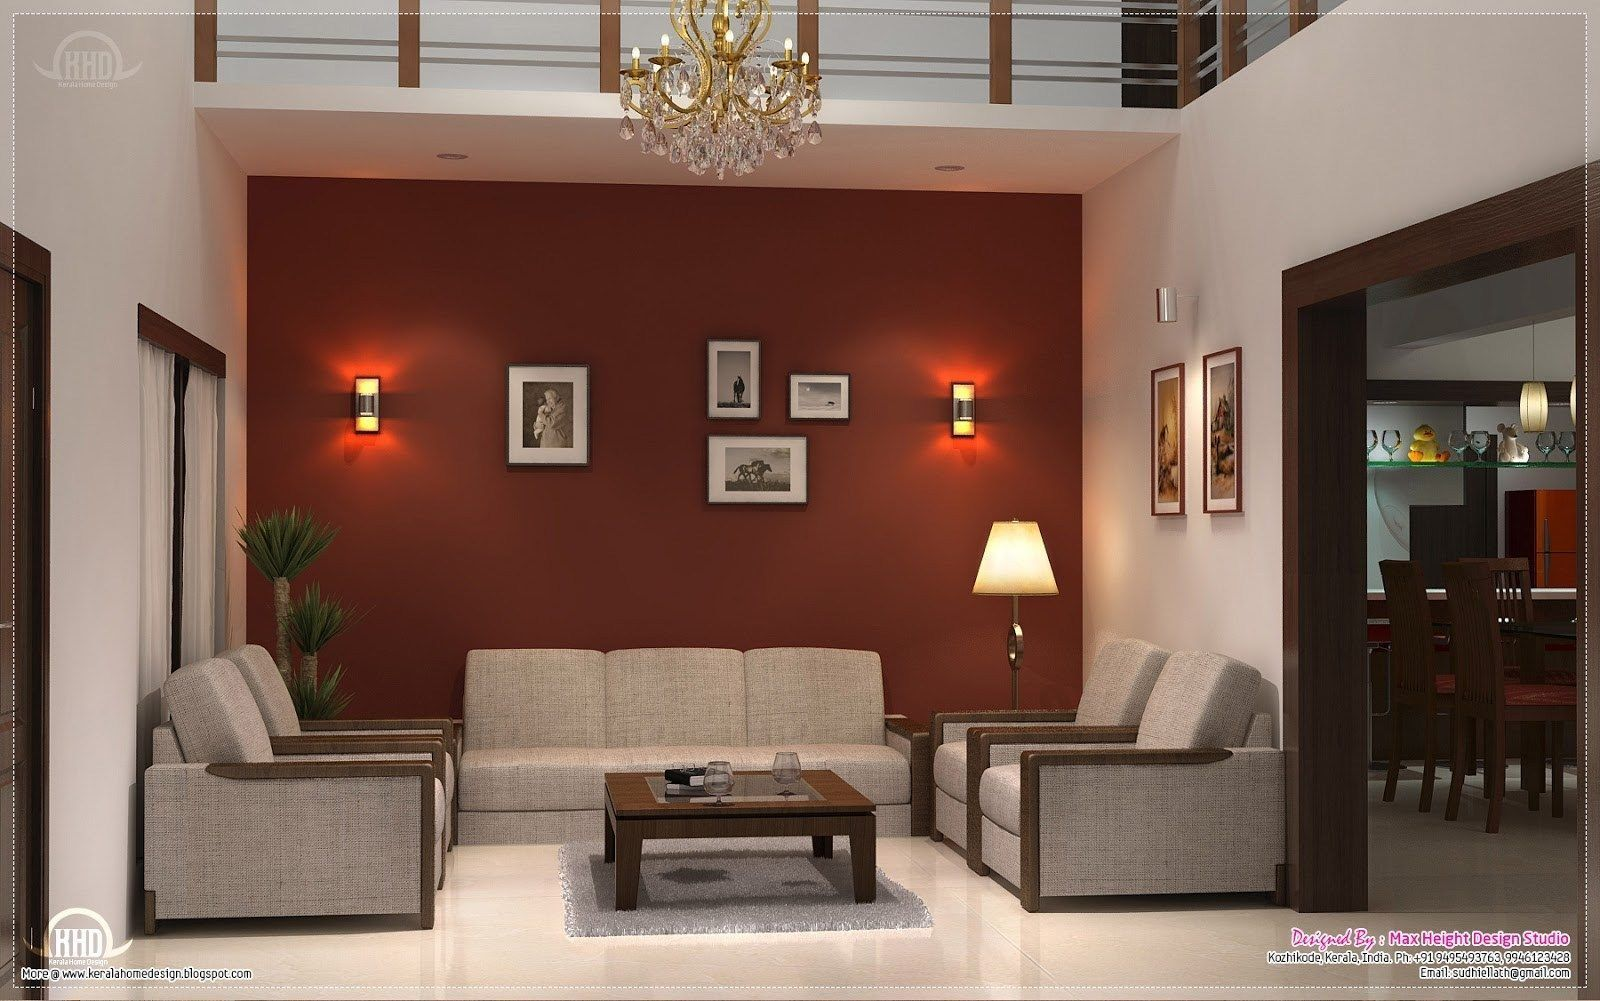 Small Living Room Interior Design India In 2020 Hall Interior Design Interior Design Living Room Indian Interior Design